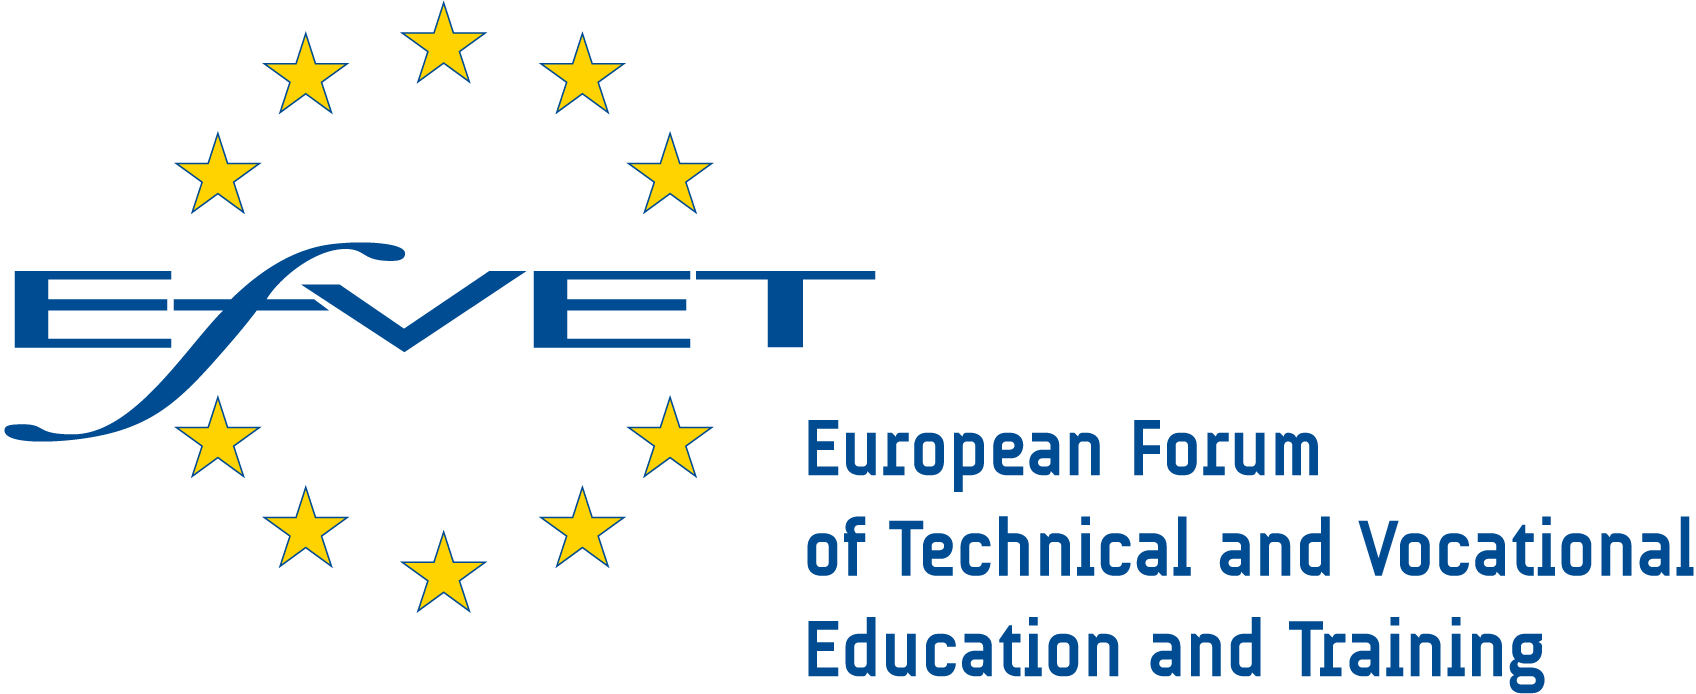 European Forum for Vocational Education & Training